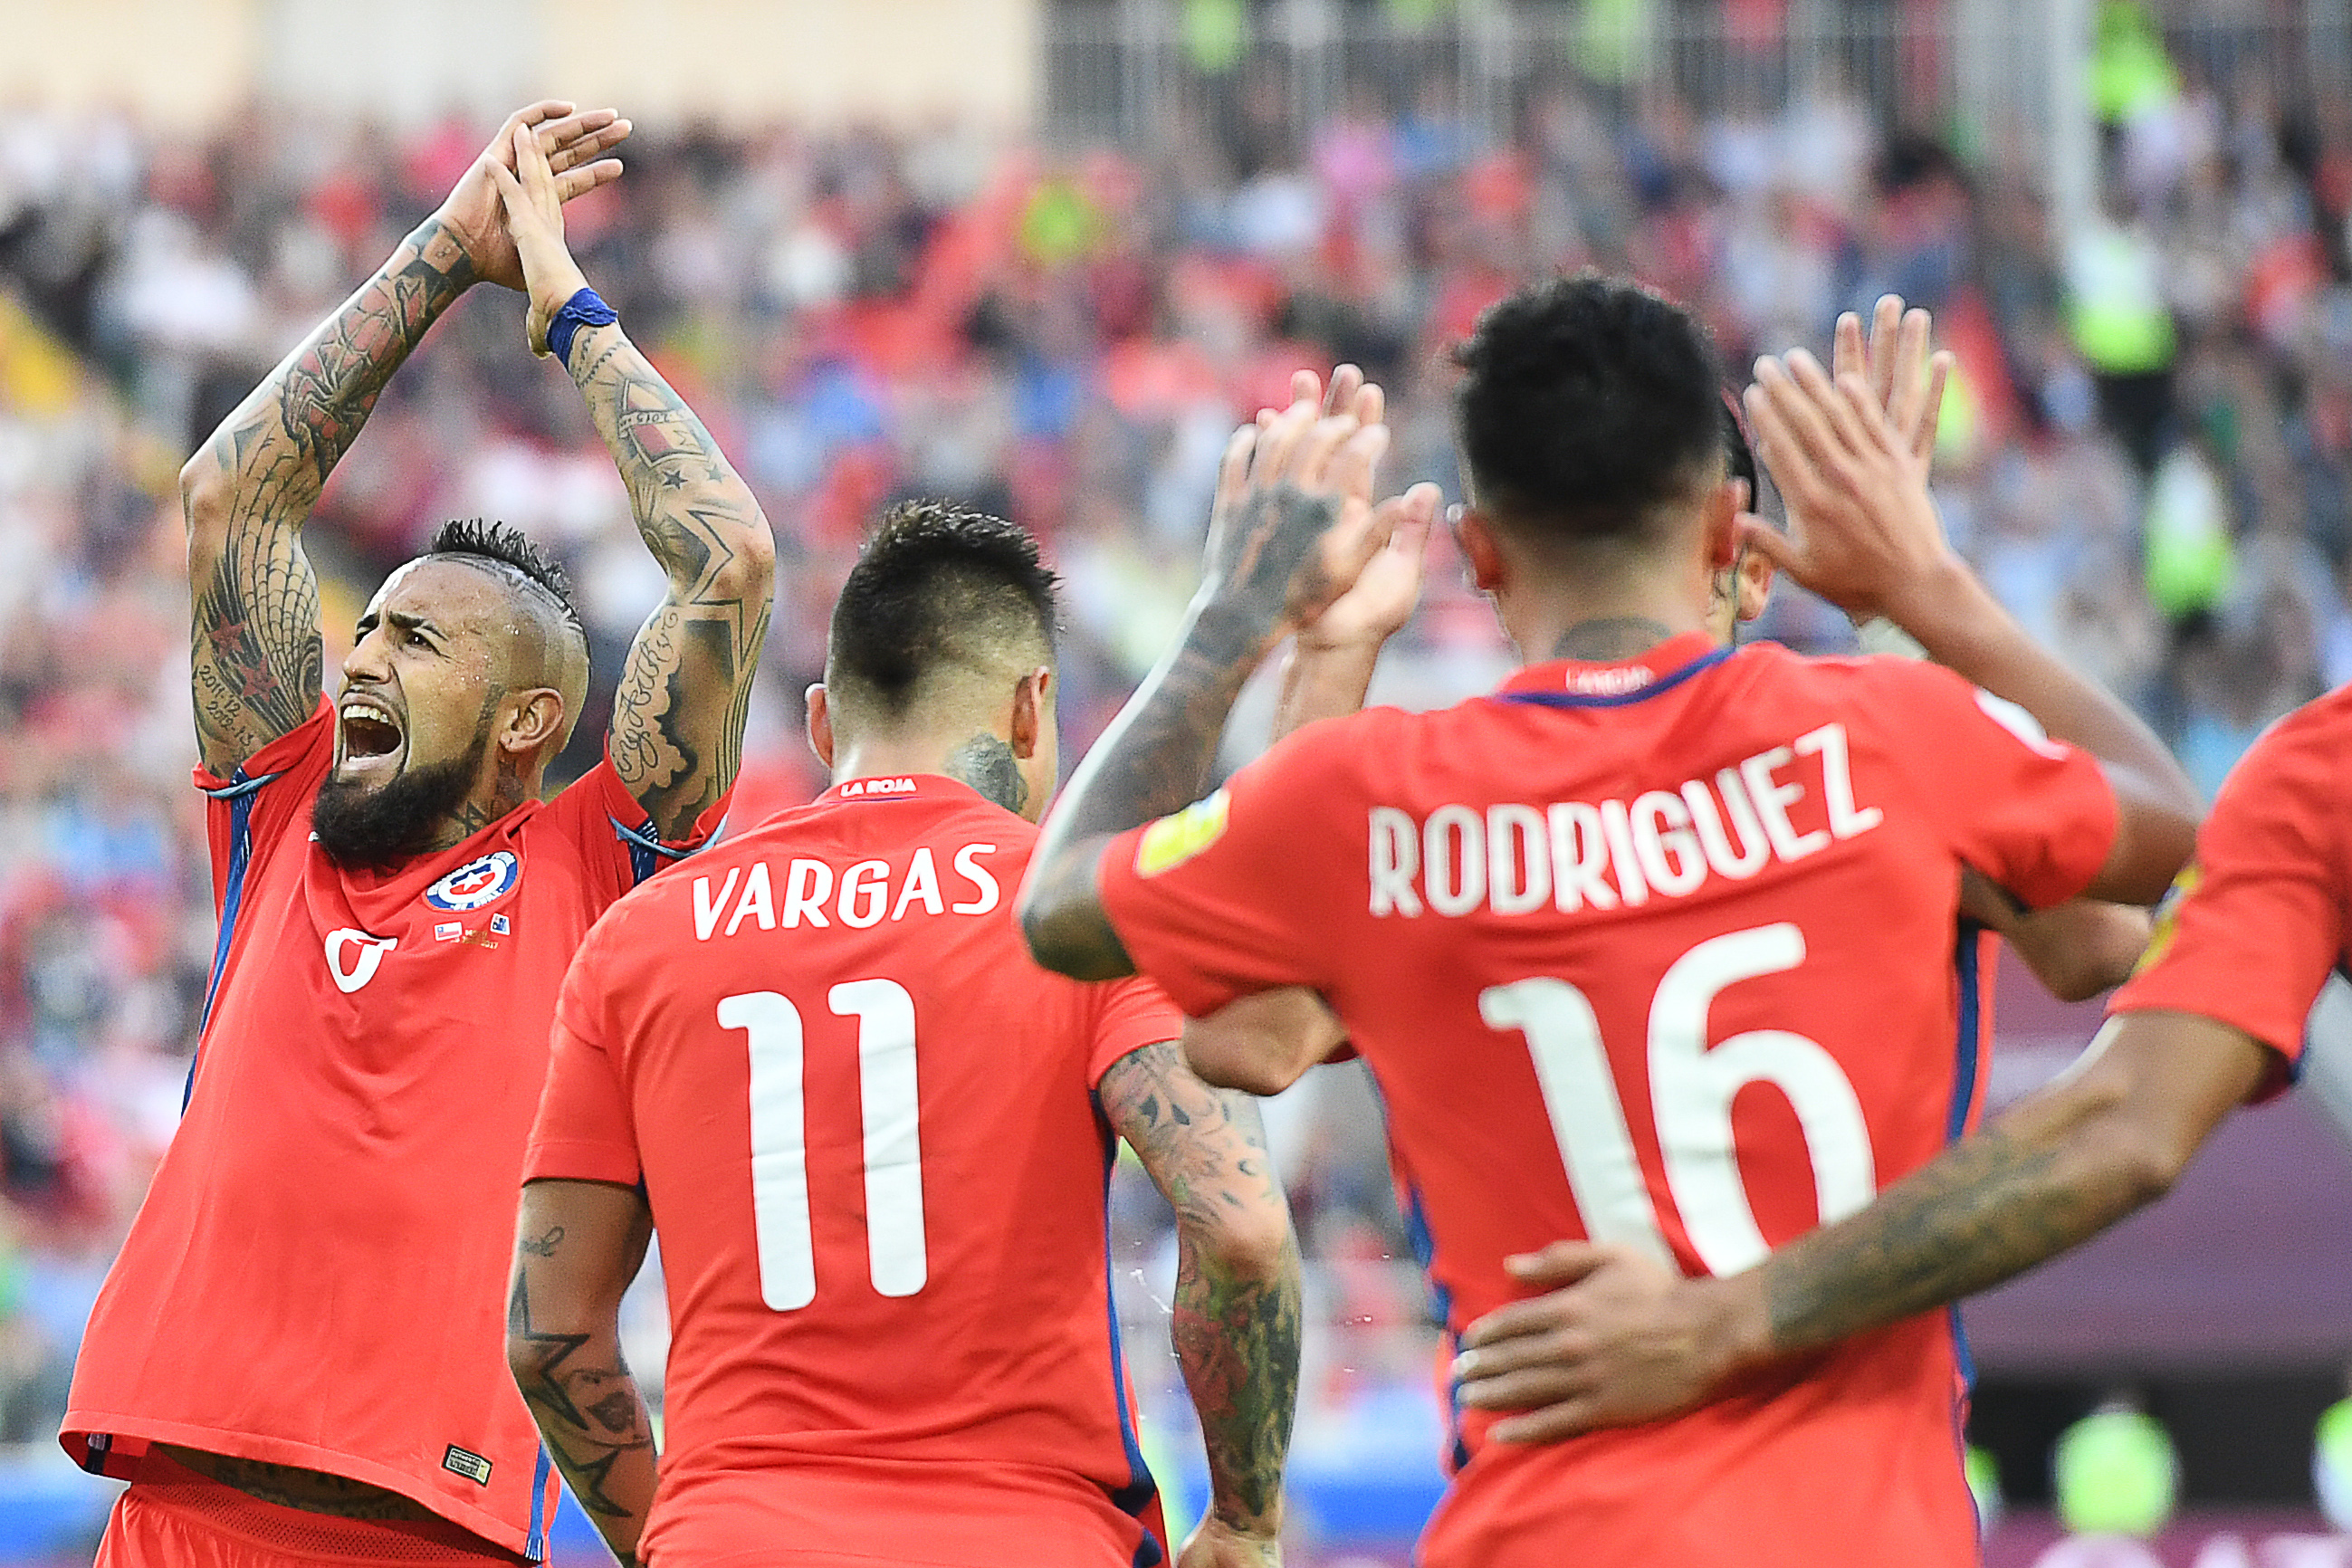 Chile's midfielder Arturo Vidal (L) celebrates after Chile's forward Martin Rodriguez (16) scored a goal during the 2017 Confederations Cup group B football match between Chile and Australia at the Spartak Stadium in Moscow on June 25, 2017. / AFP PHOTO / Yuri KADOBNOV